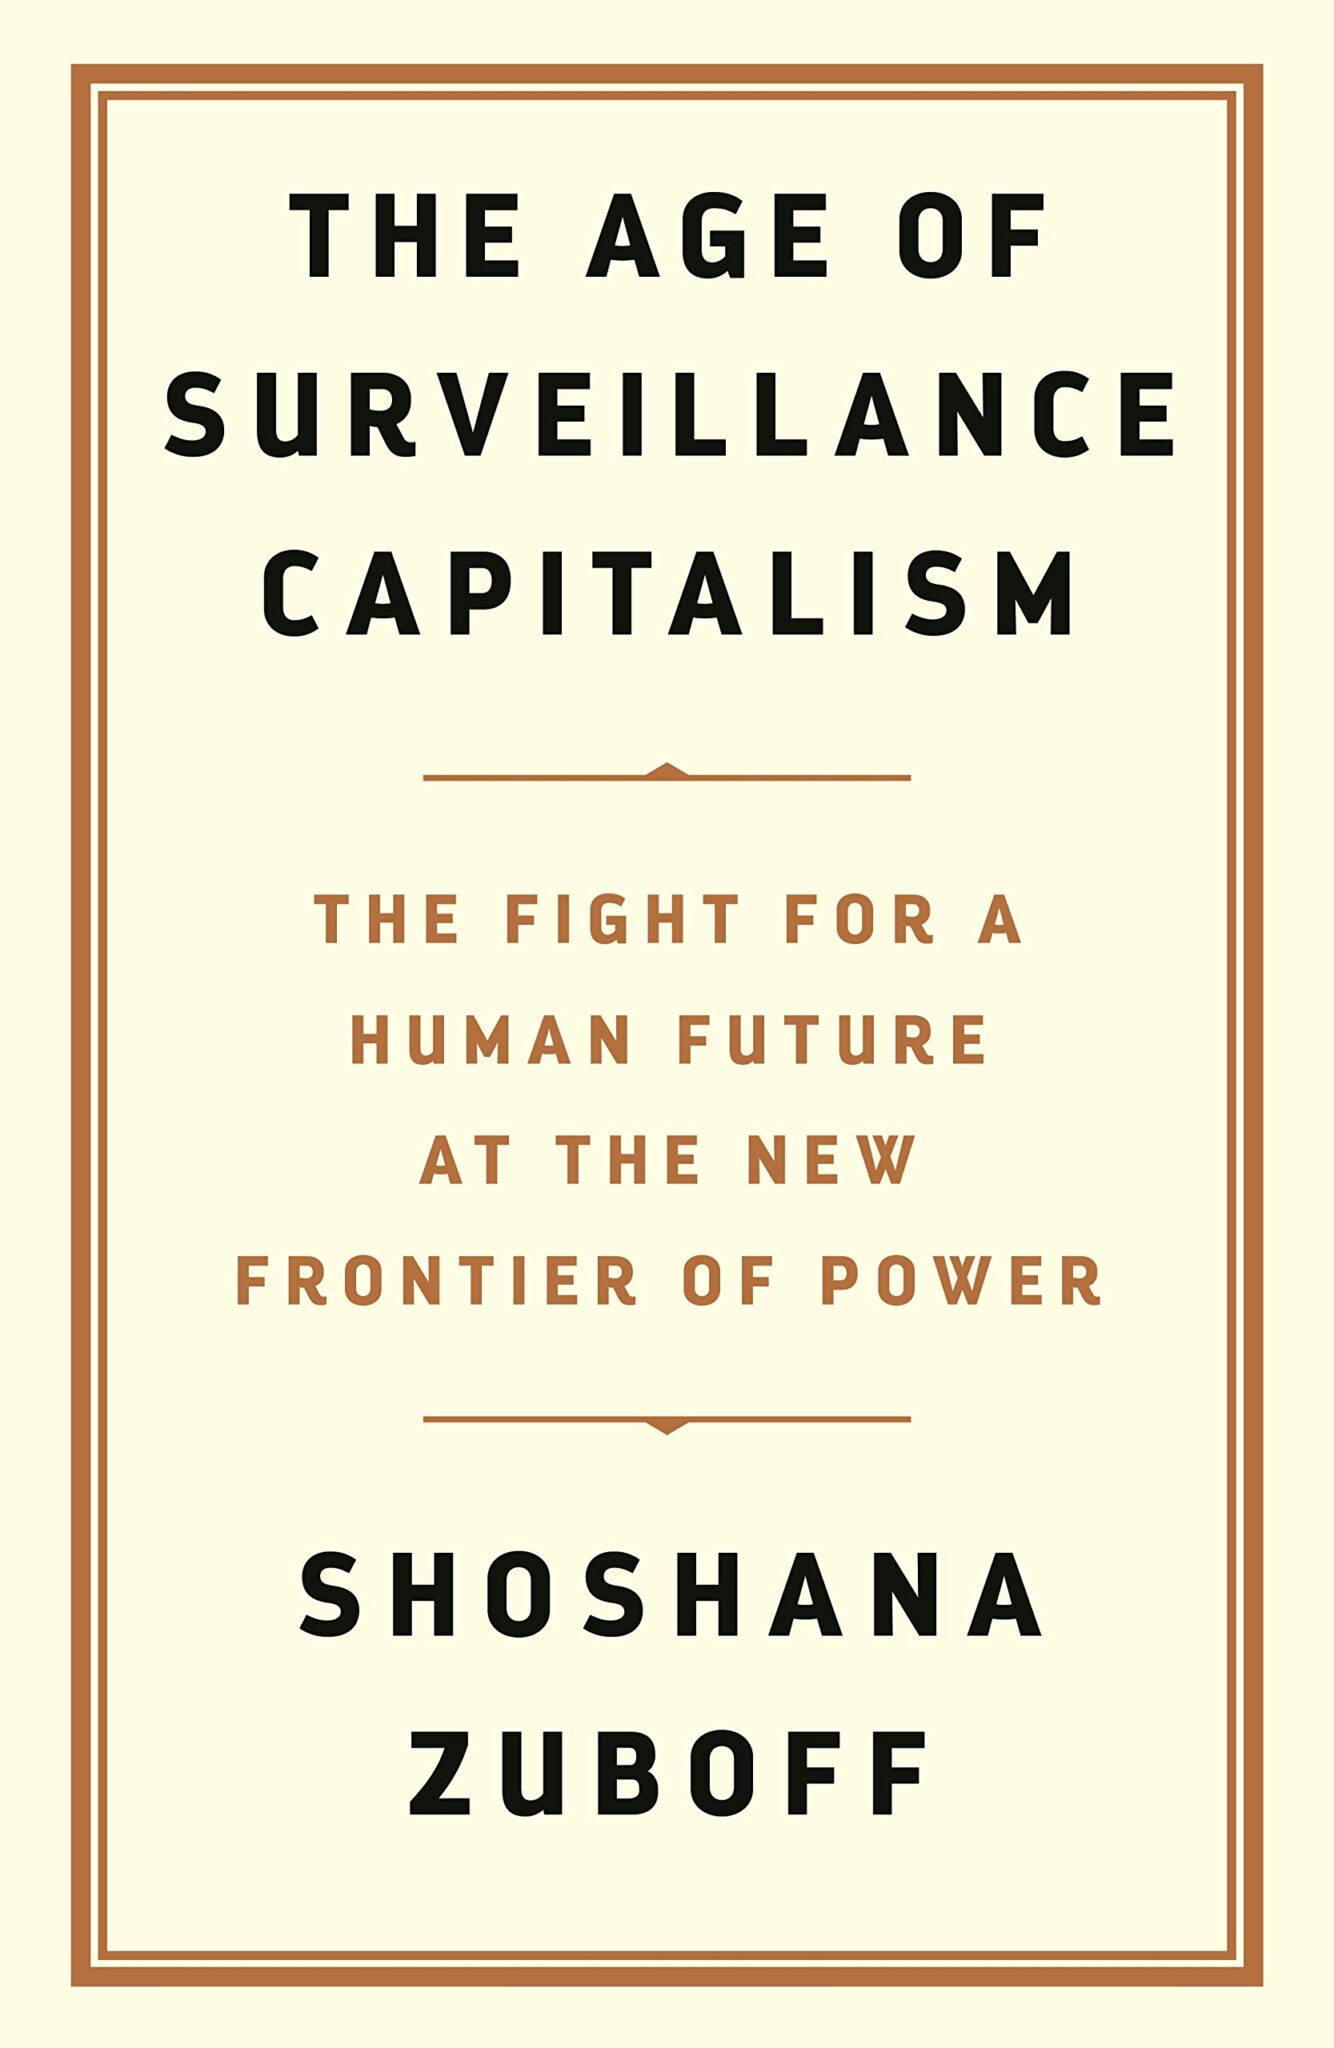 The Age of Surveillance Capitalism: The Fight for the Future at the New Frontier of Power.